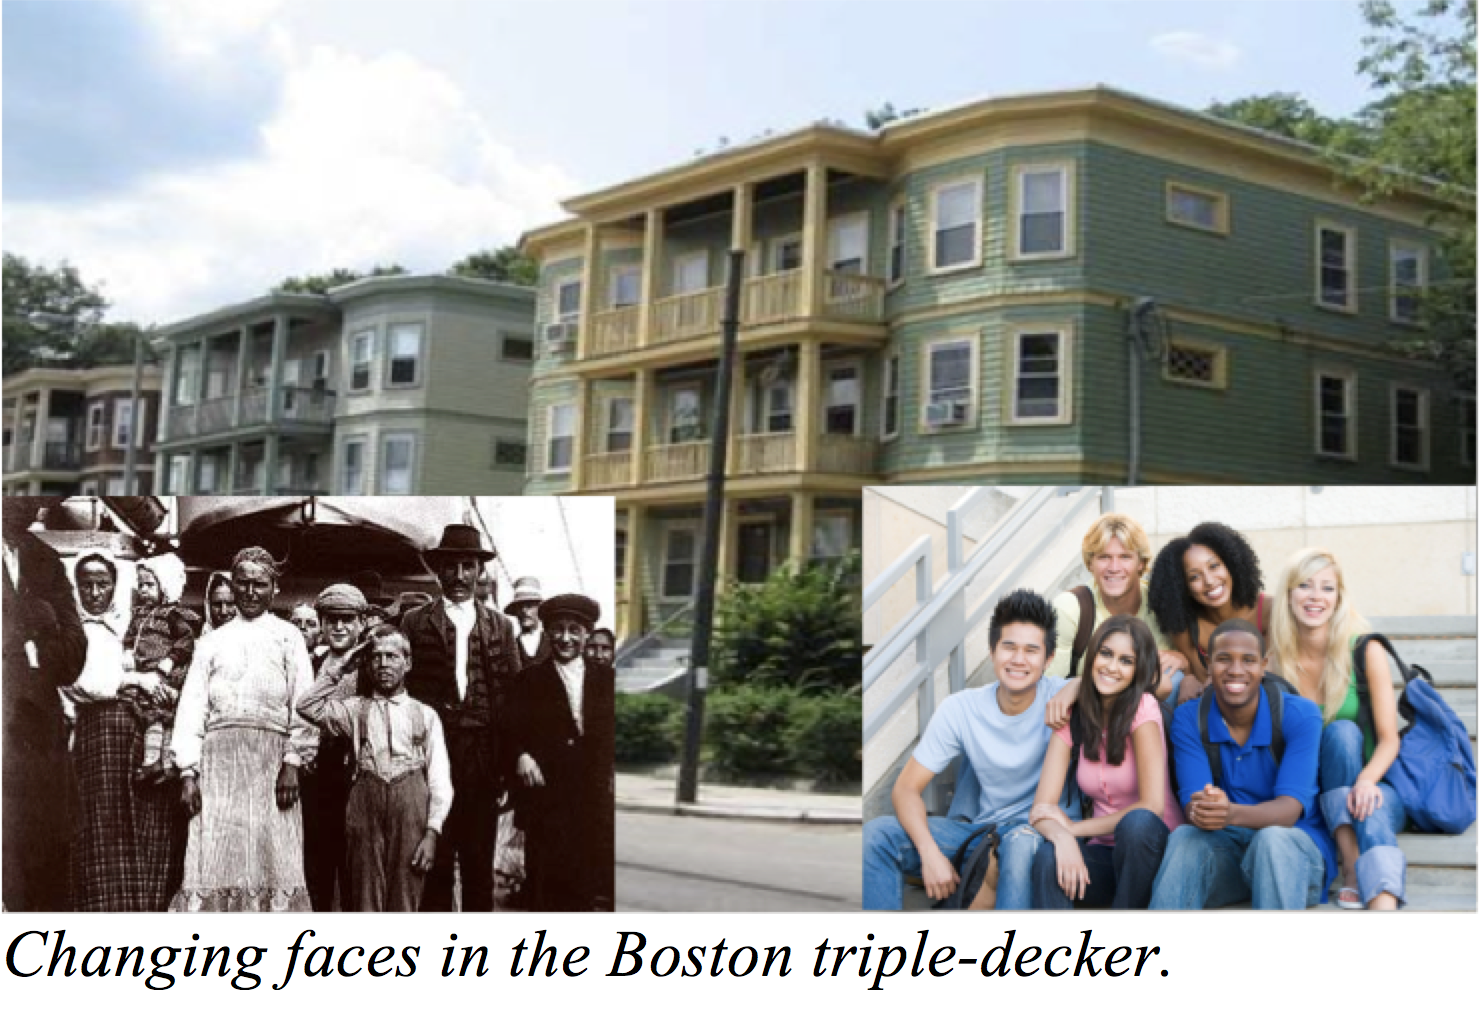 Boston Triple-Decker with residents then and now